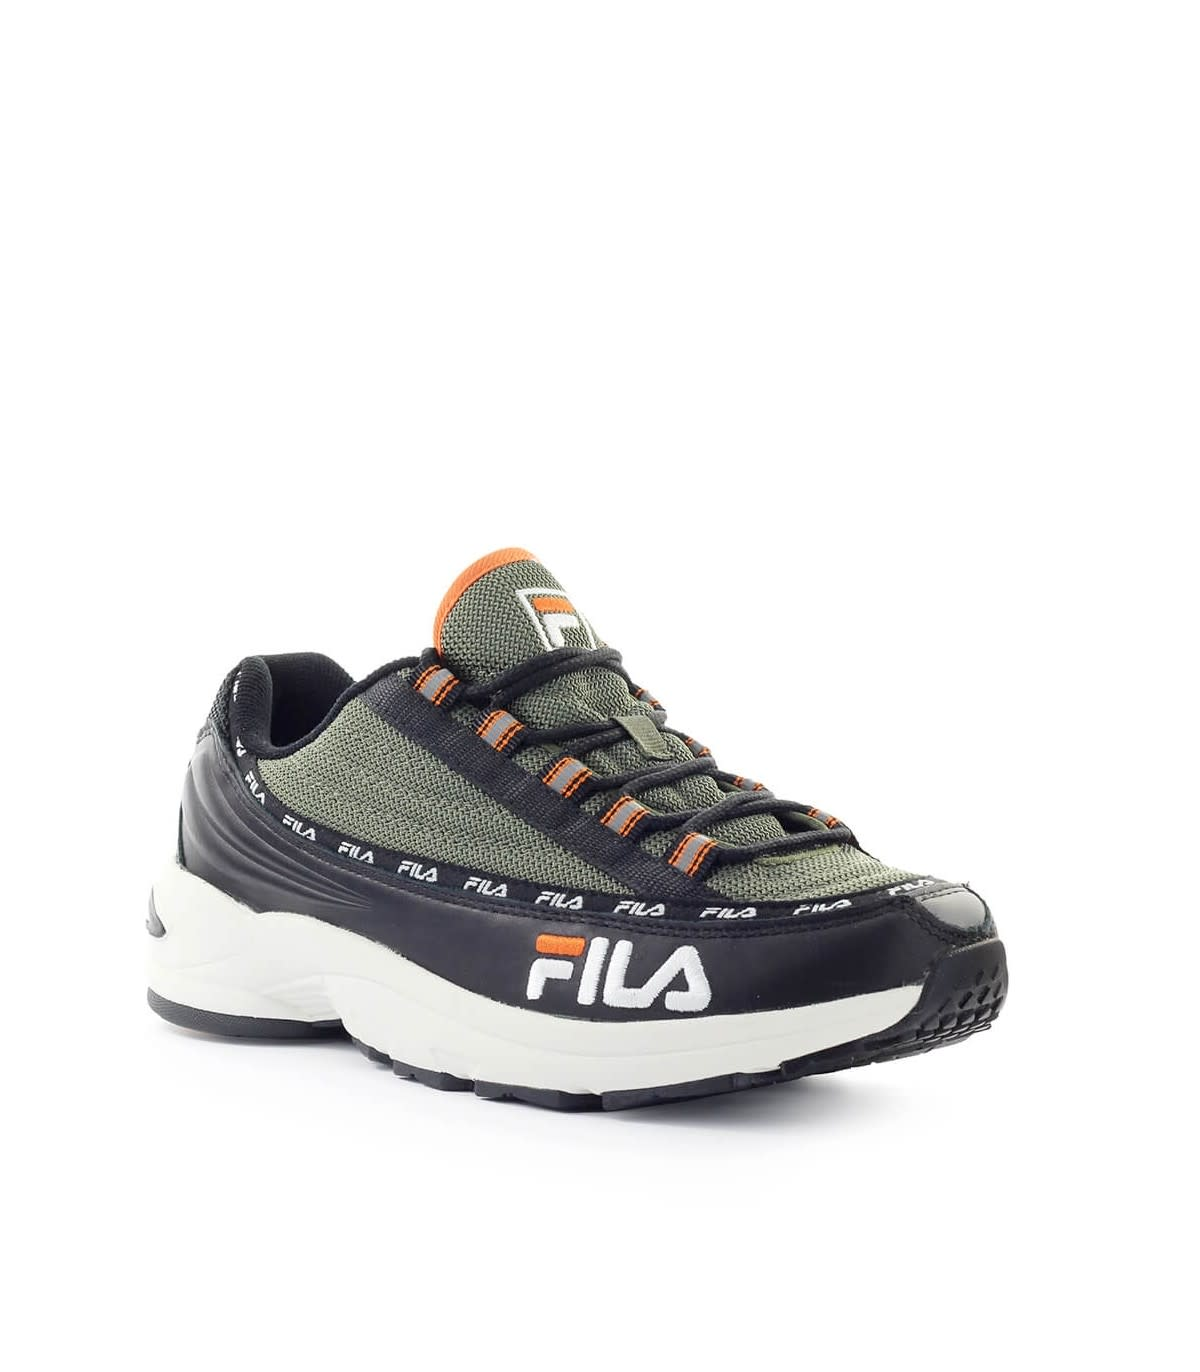 Fila Fila Dragster97 Black Olive Green Sneaker Black